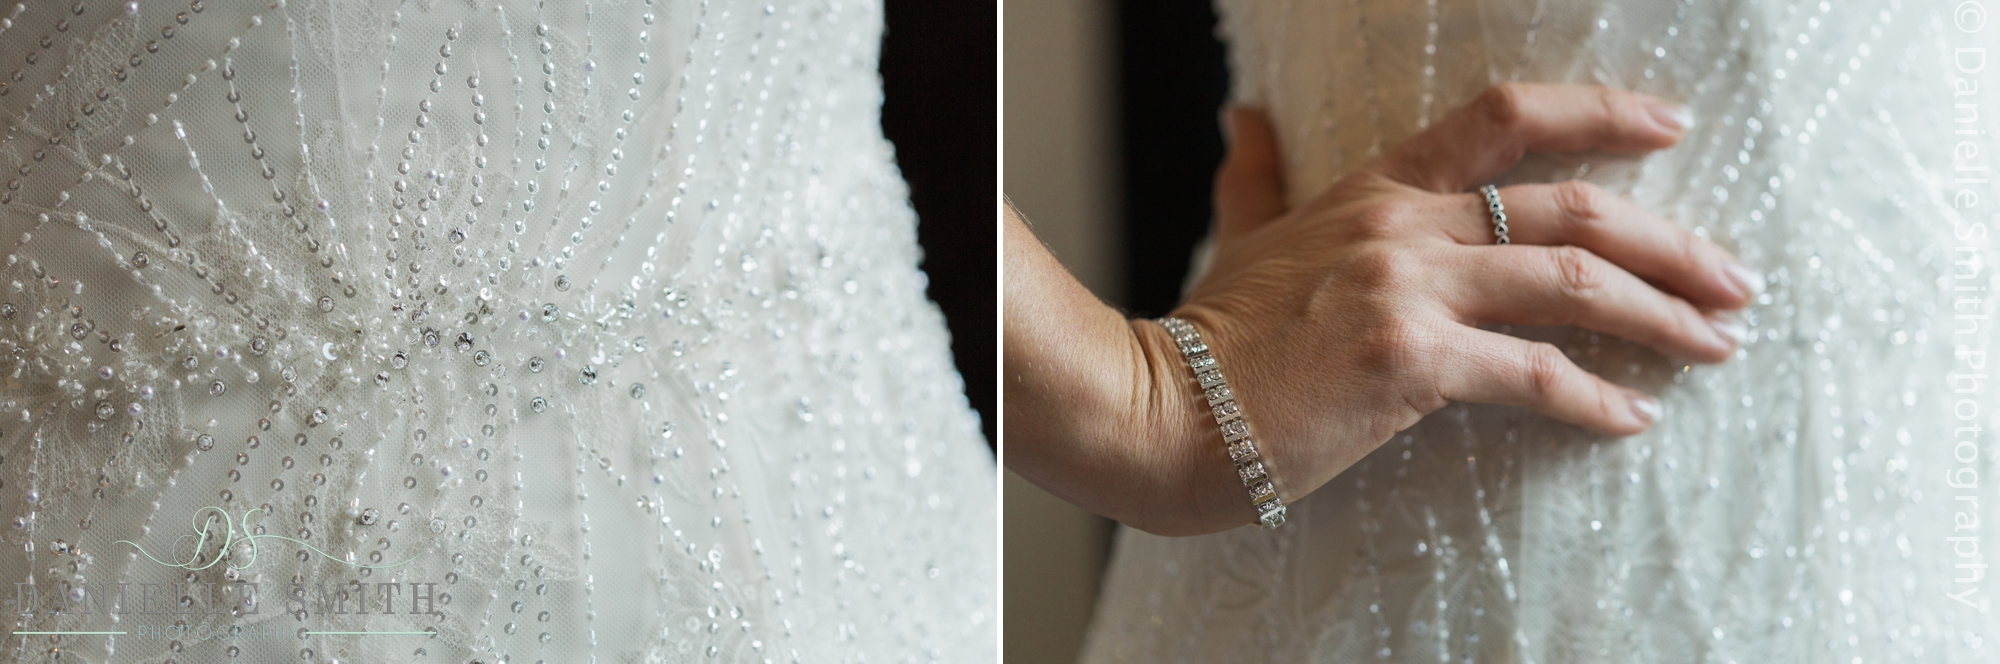 embellished wedding dress detailing